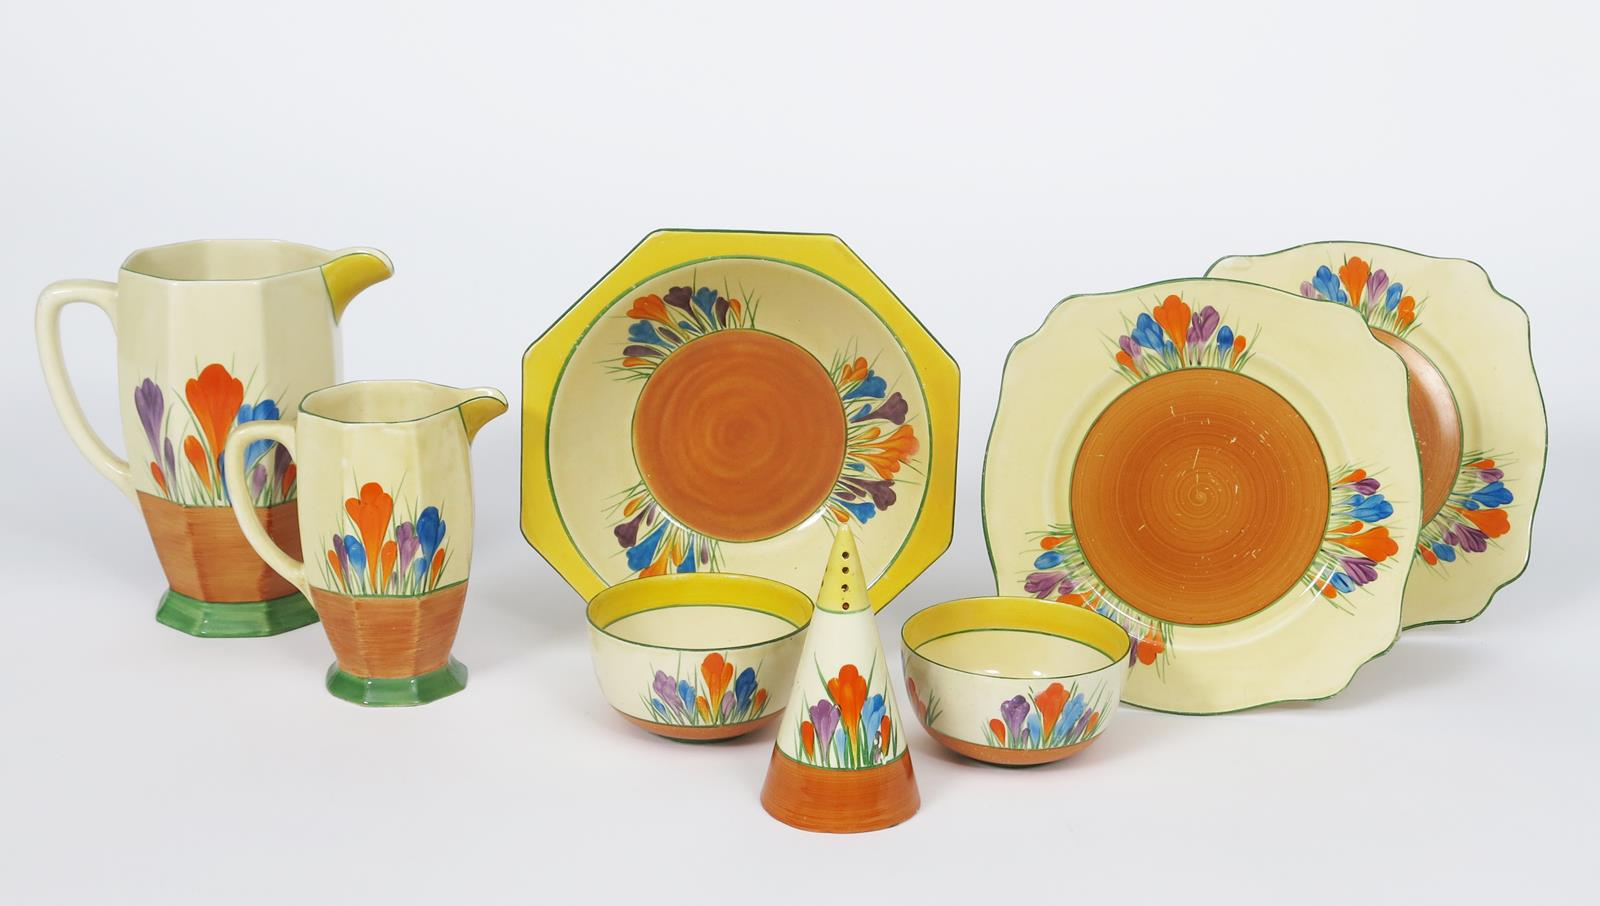 'Crocus' a Clarice Cliff Bizarre Conical sugar sifter, painted in colours between yellow and brown